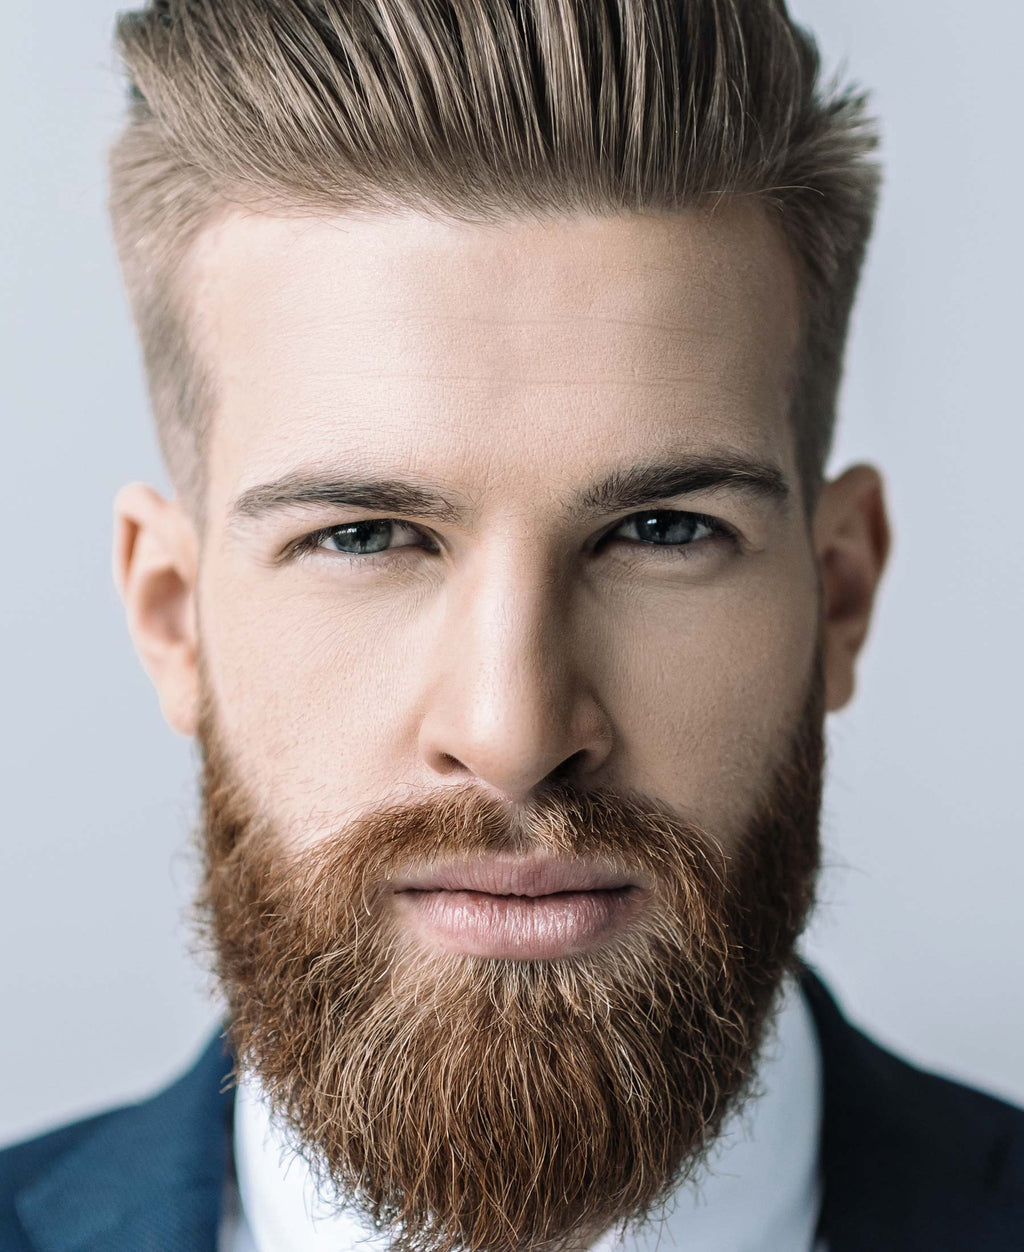 INSTANT BEARD™ SOLUTION BARBE MAGIQUE